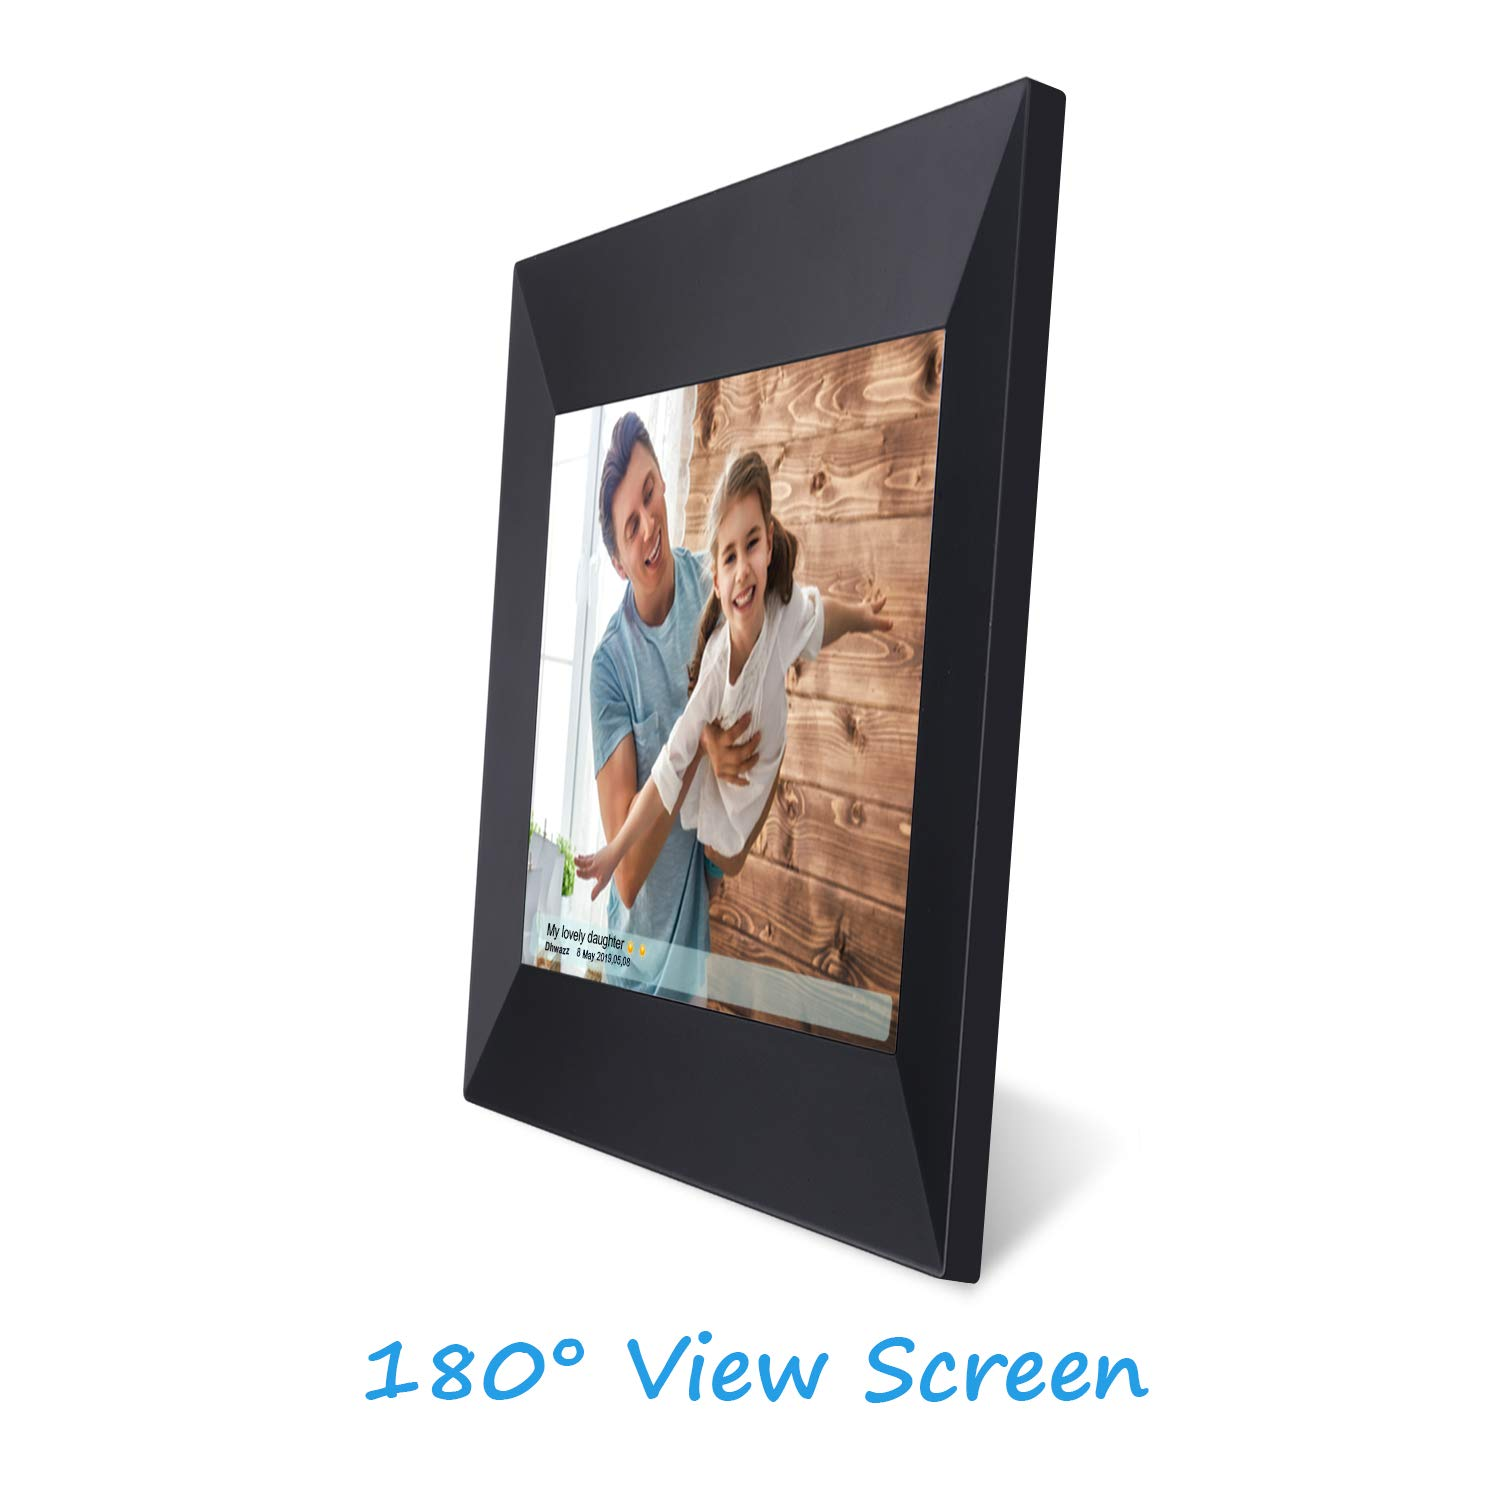 Dhwazz 8 Inch WiFi Digital Photo Frame, IPS Electronic Picture Frame with LCD Touch Screen, 8GB Internal Storage, Wall-Mountable, Display and Share Photos Instantly via Mobile APP by Dhwazz (Image #5)